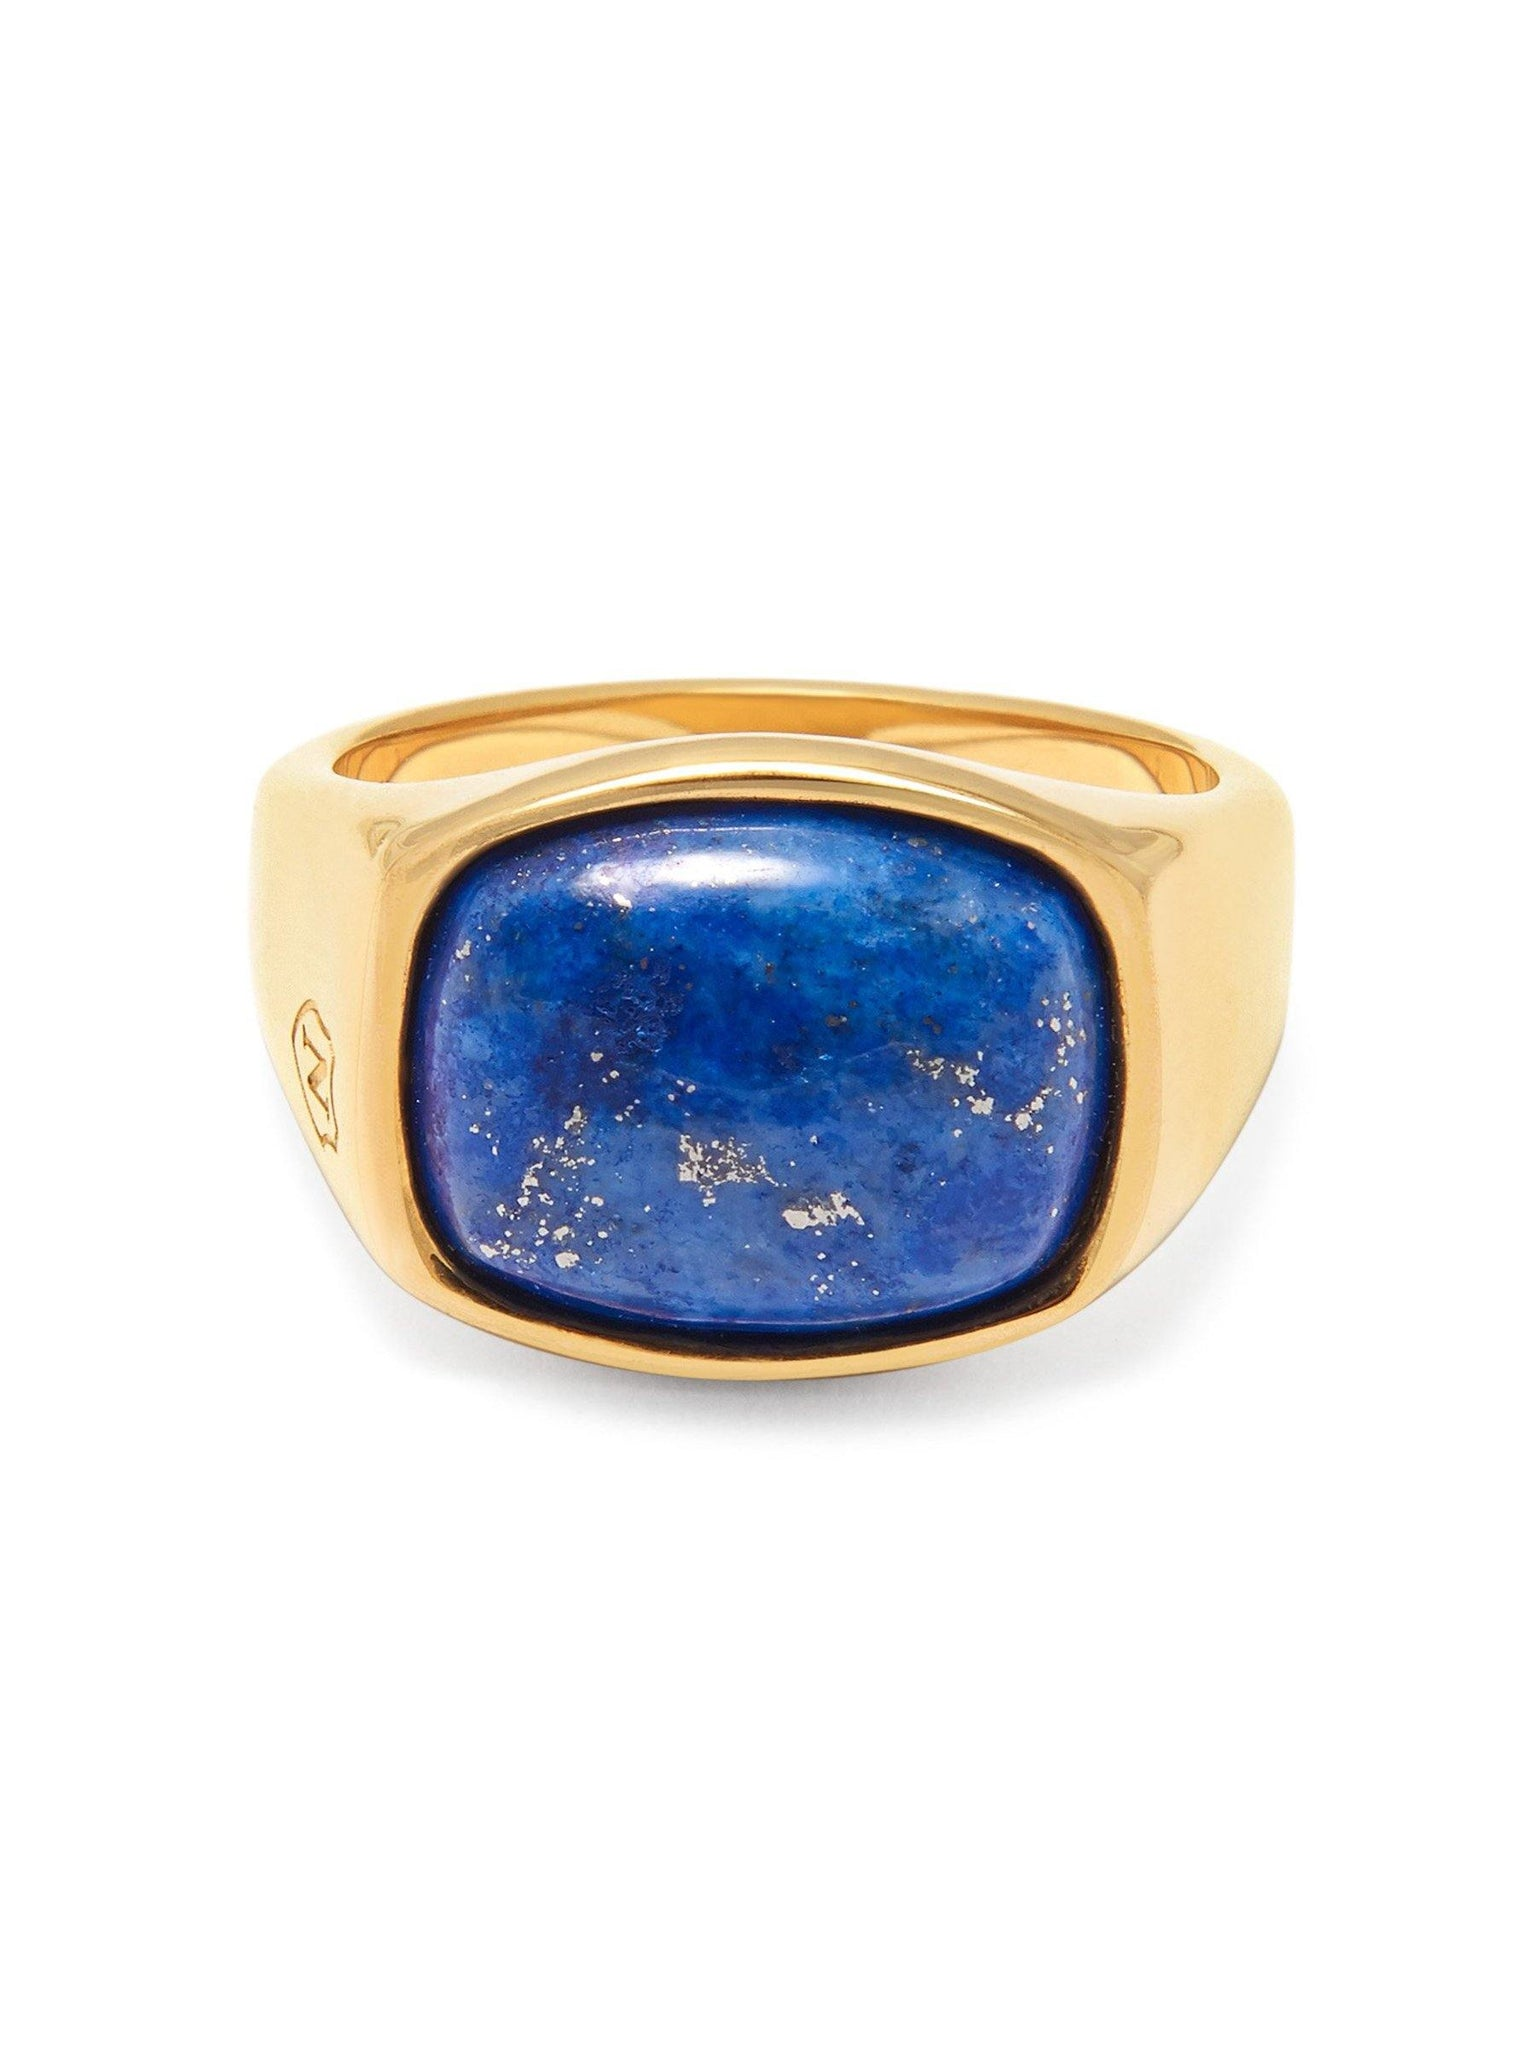 Men's Gold Signet Ring with Blue Lapis - Nialaya Jewelry